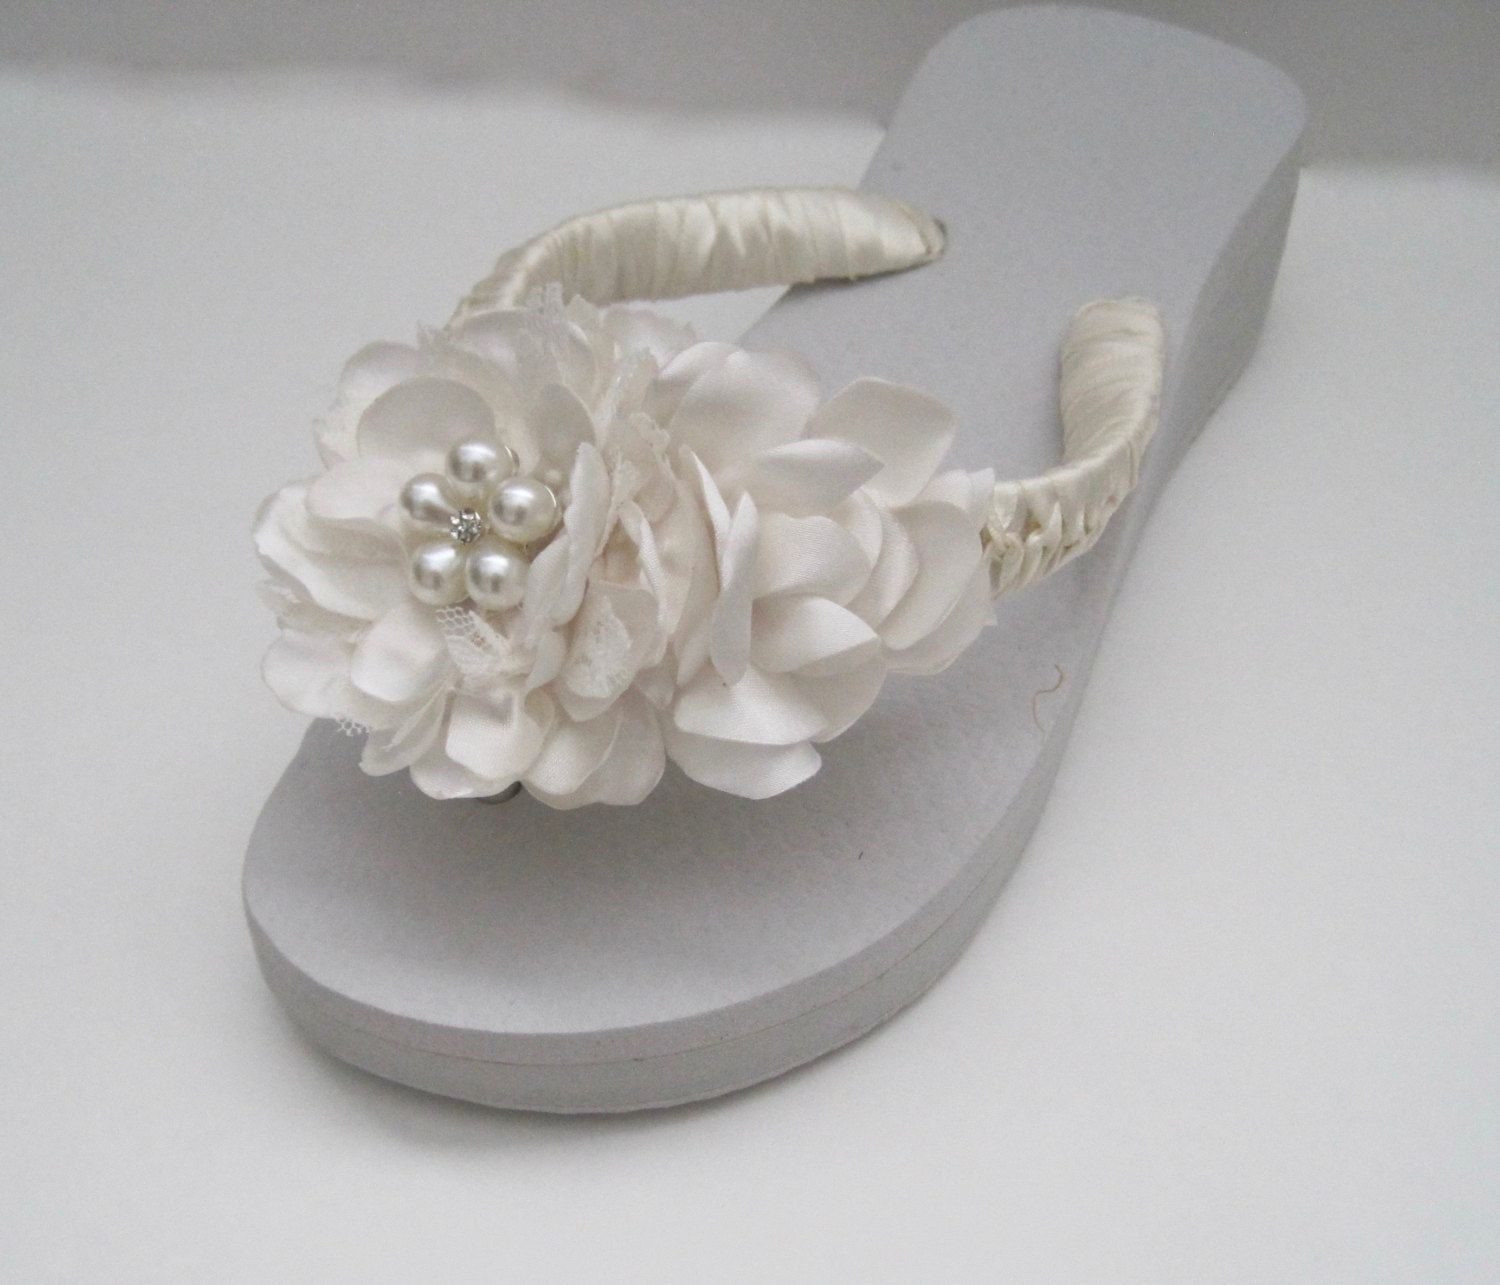 15ee03c6d7e306 Flip Flops Bridal Wedding French Knotted Ivory Satin and Lace Handmade  Flowers Choose Pearl and Rhinestone or all Rhinestone Accent Custom by  theraggedyrose ...